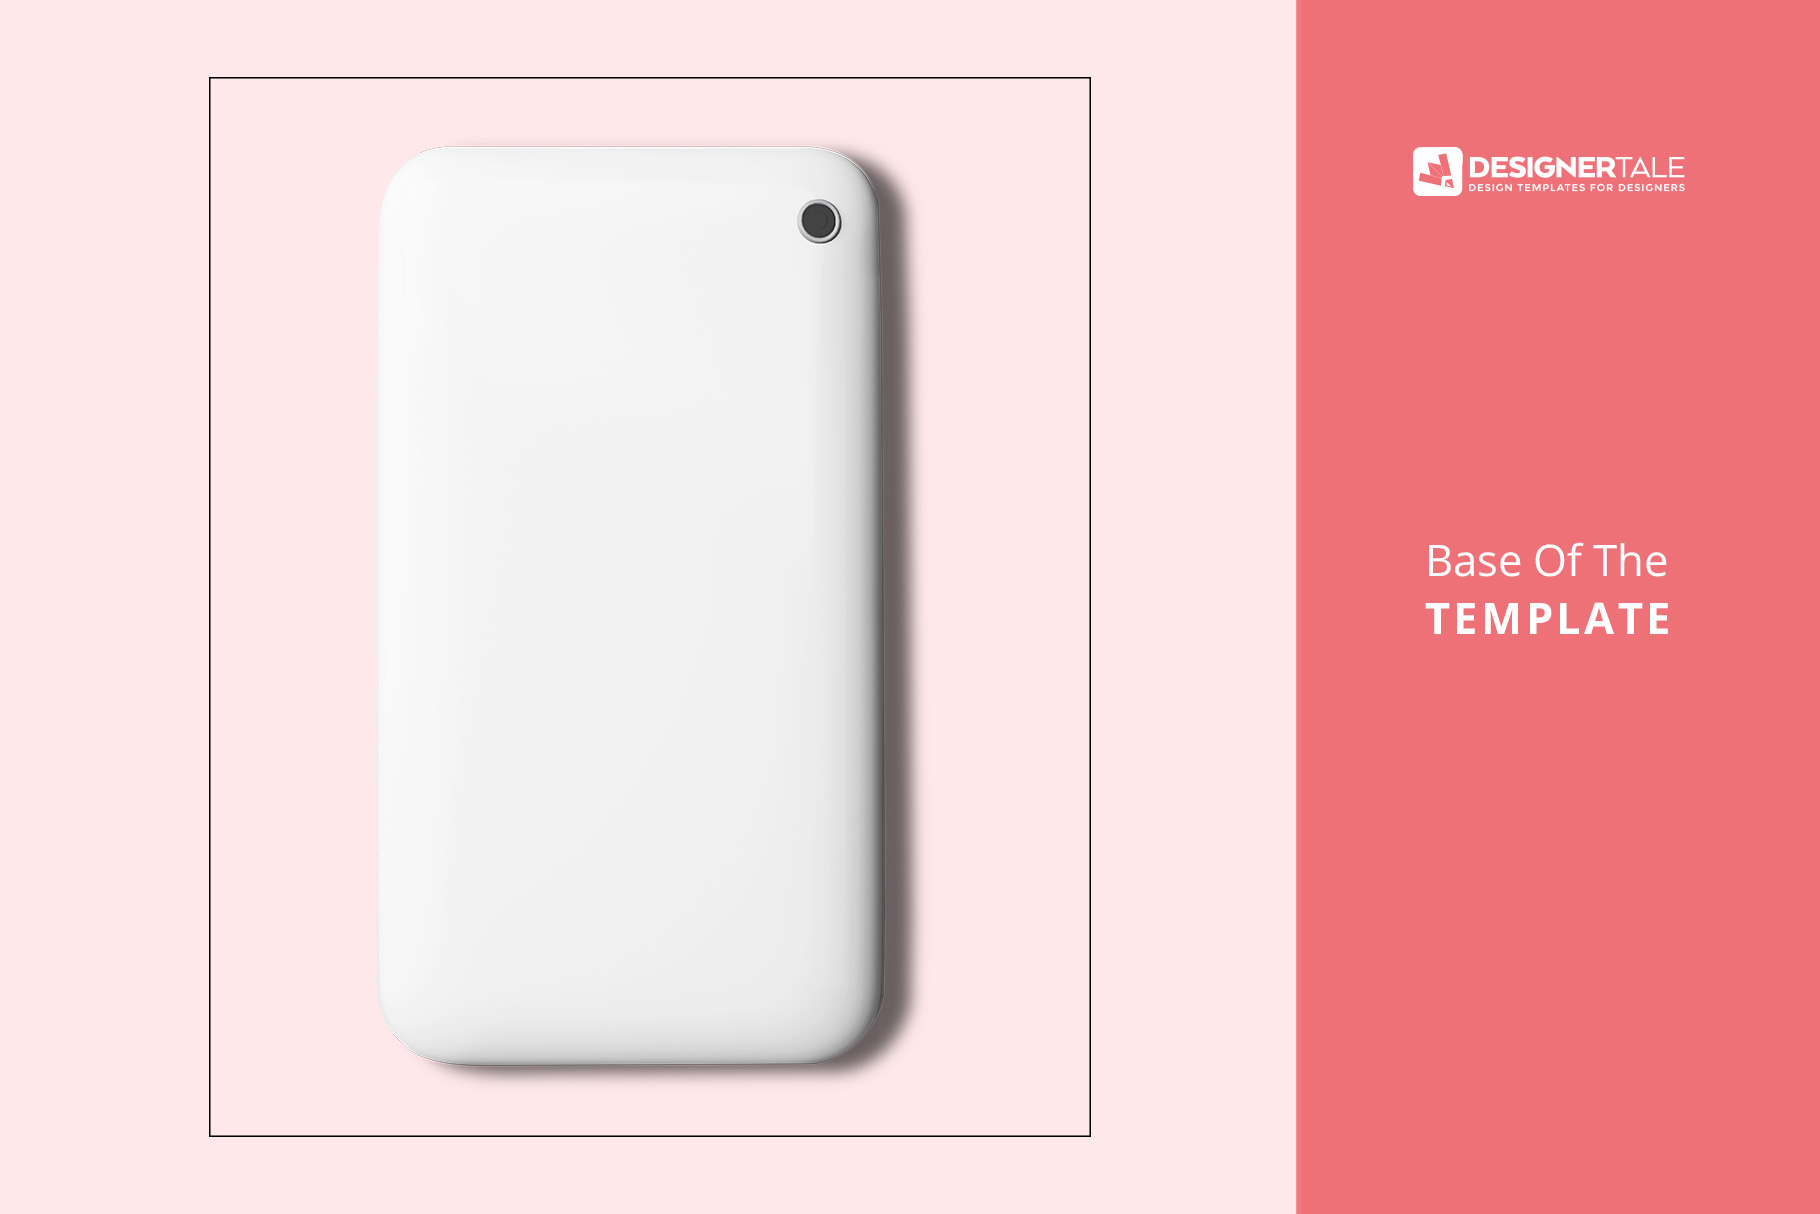 image base of the top view smart phone back cover mockup